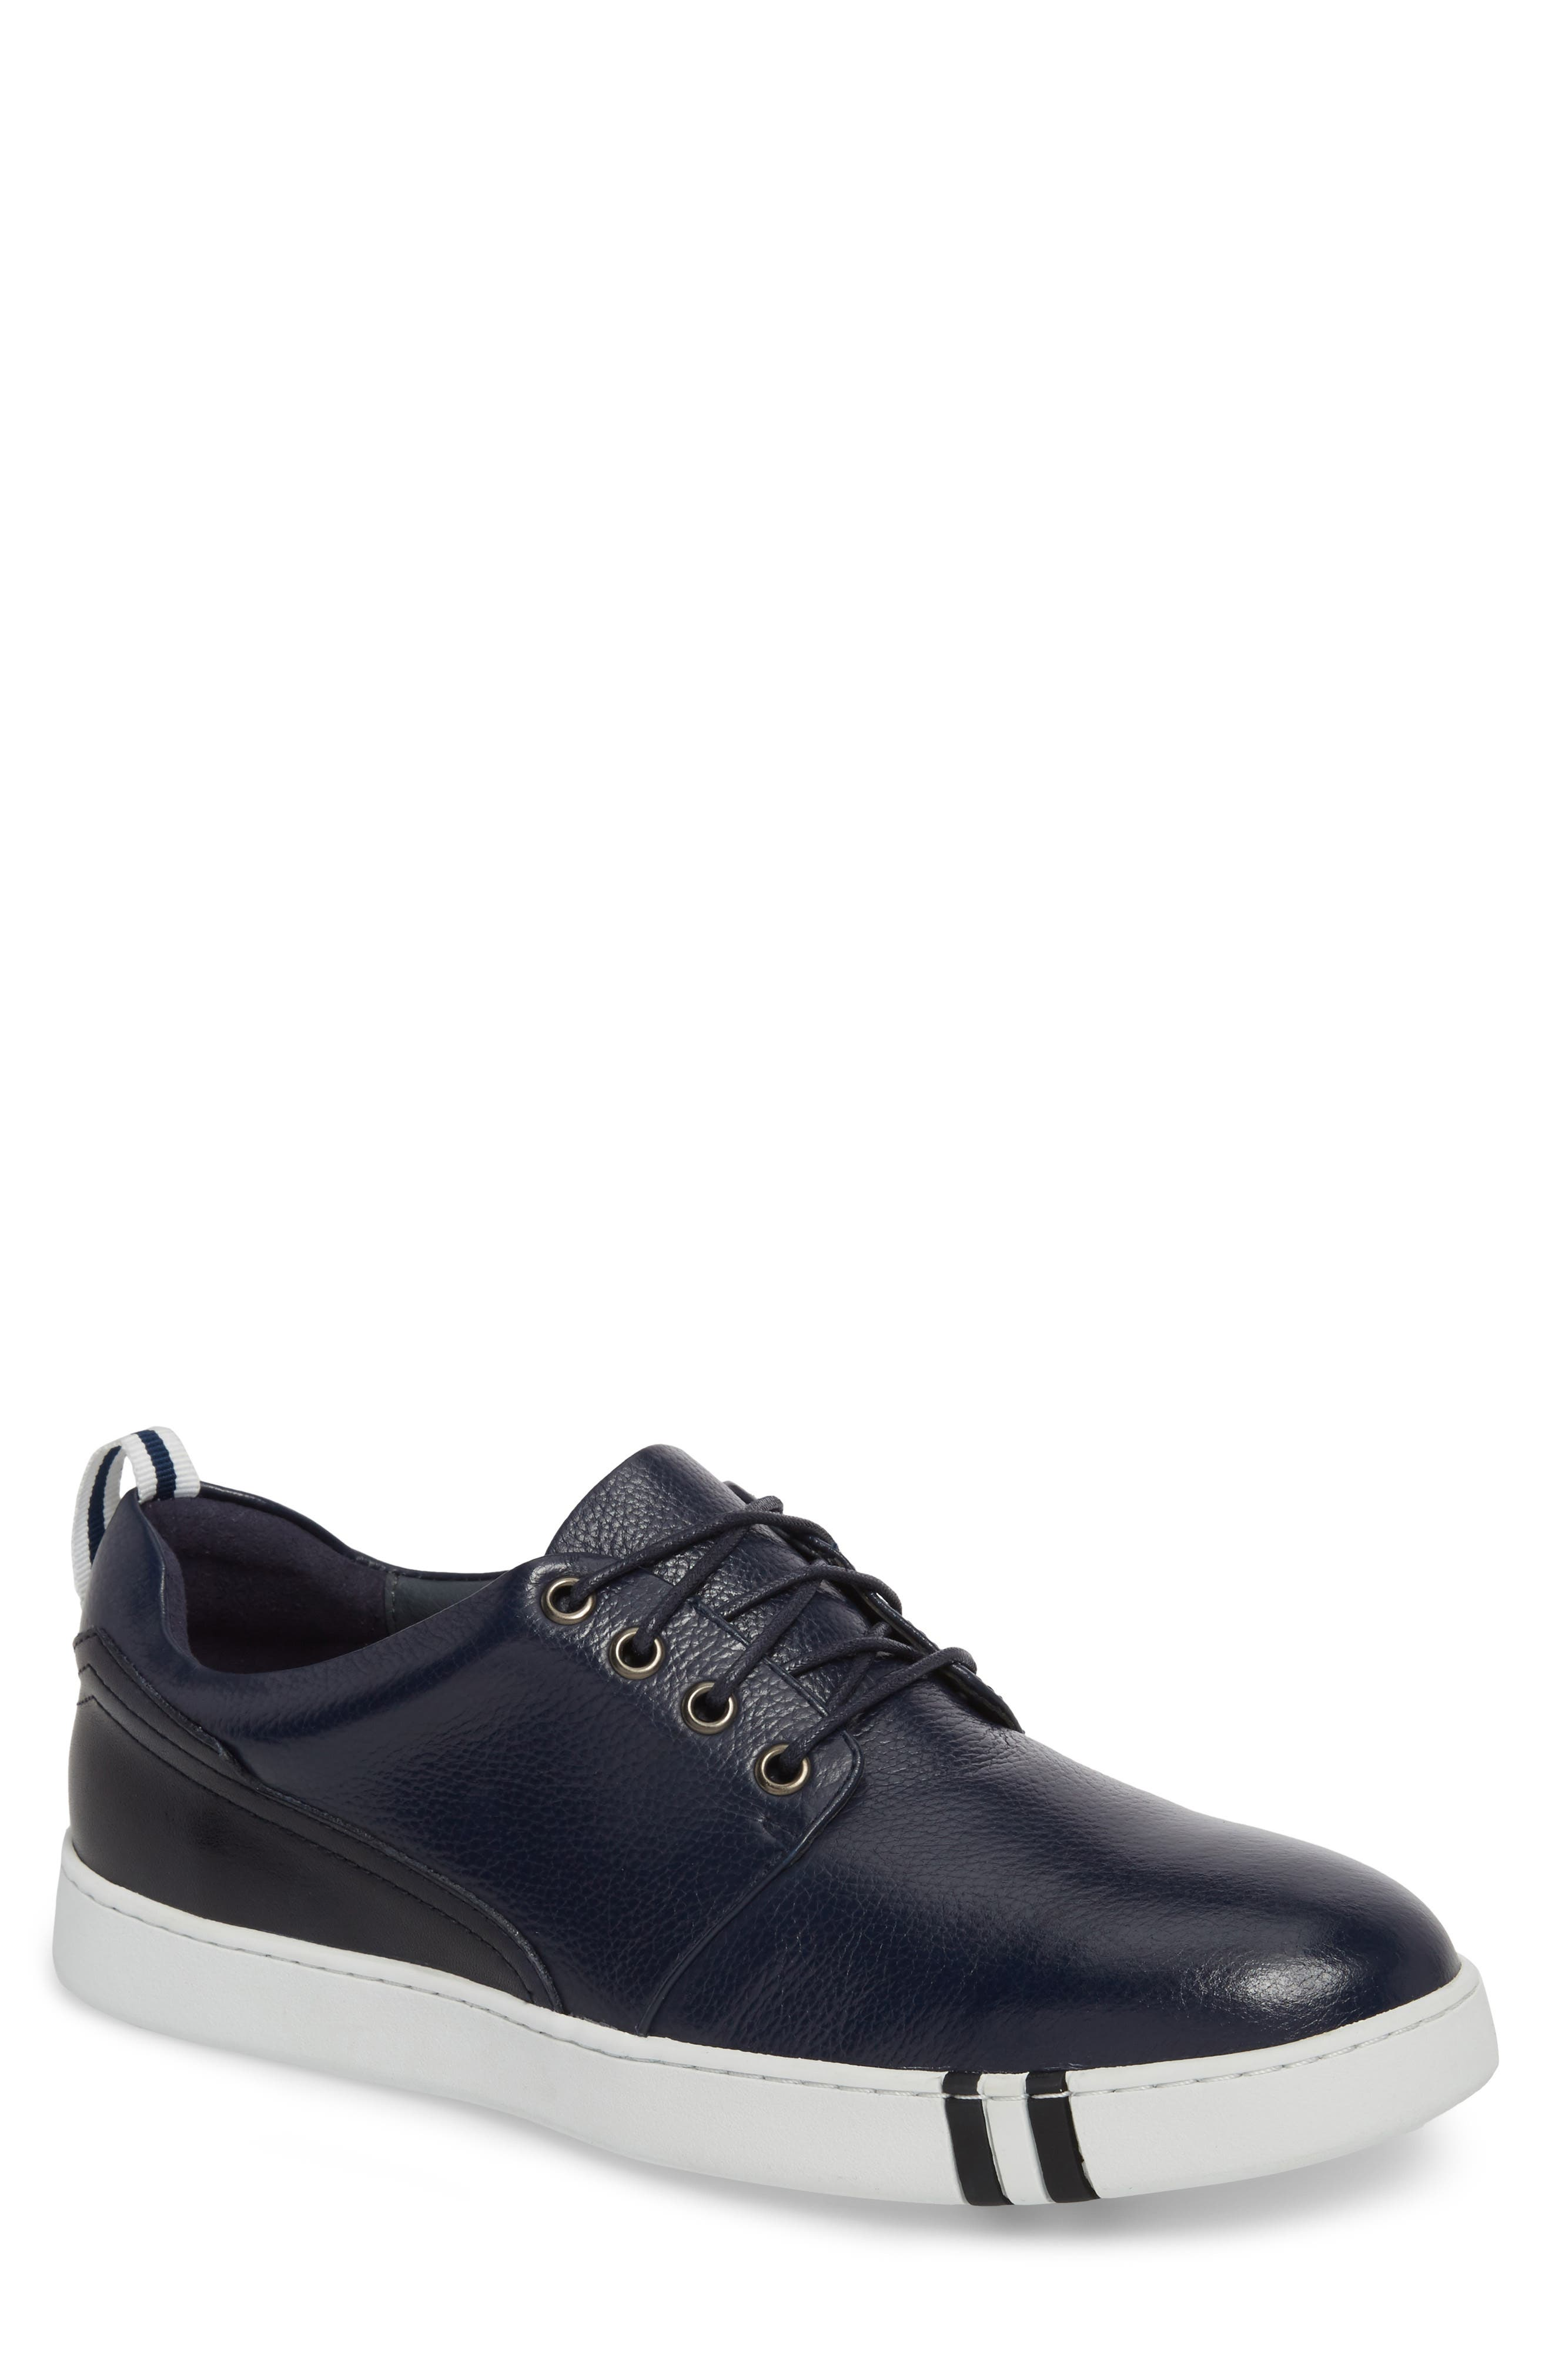 Kings Low Top Sneaker,                         Main,                         color, Navy Leather